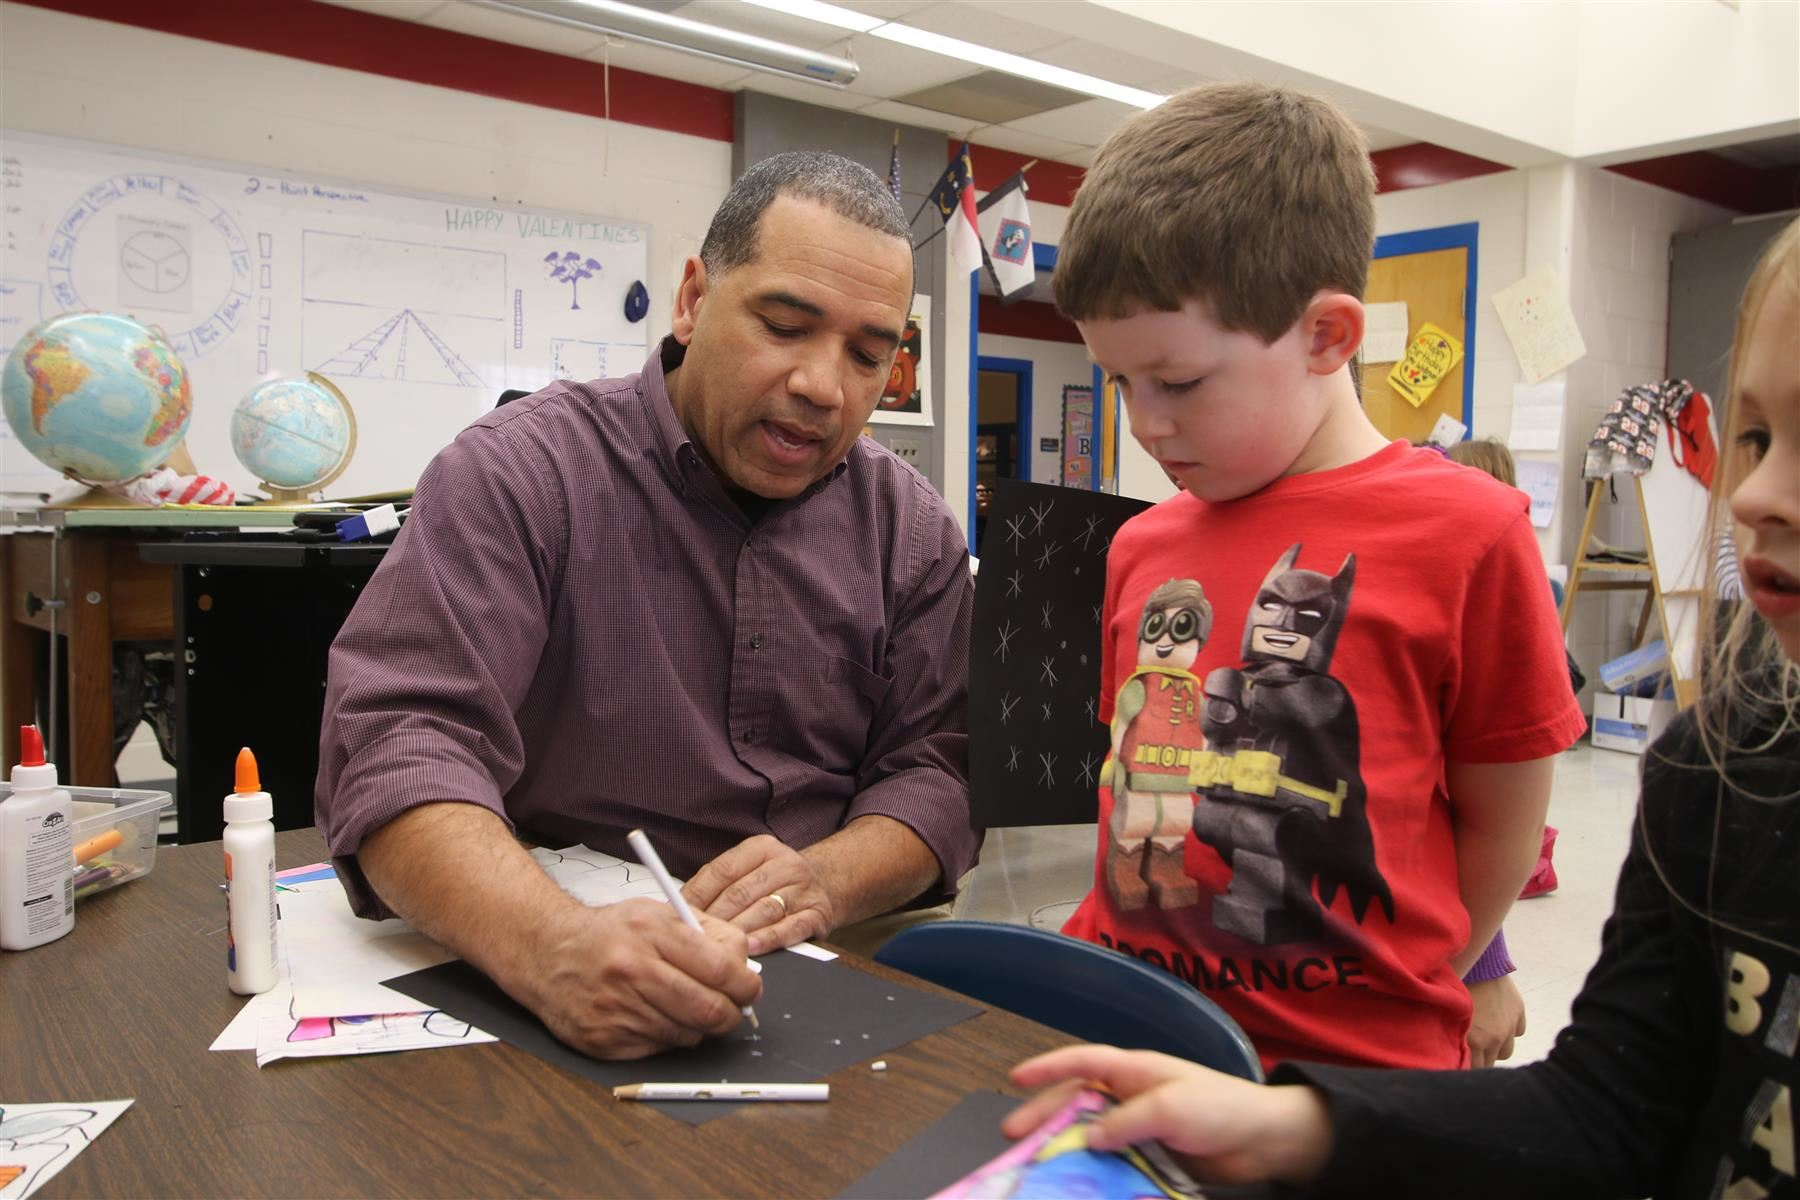 Arts educator Darren Wellman works with a student at Pittsboro Elementary School.